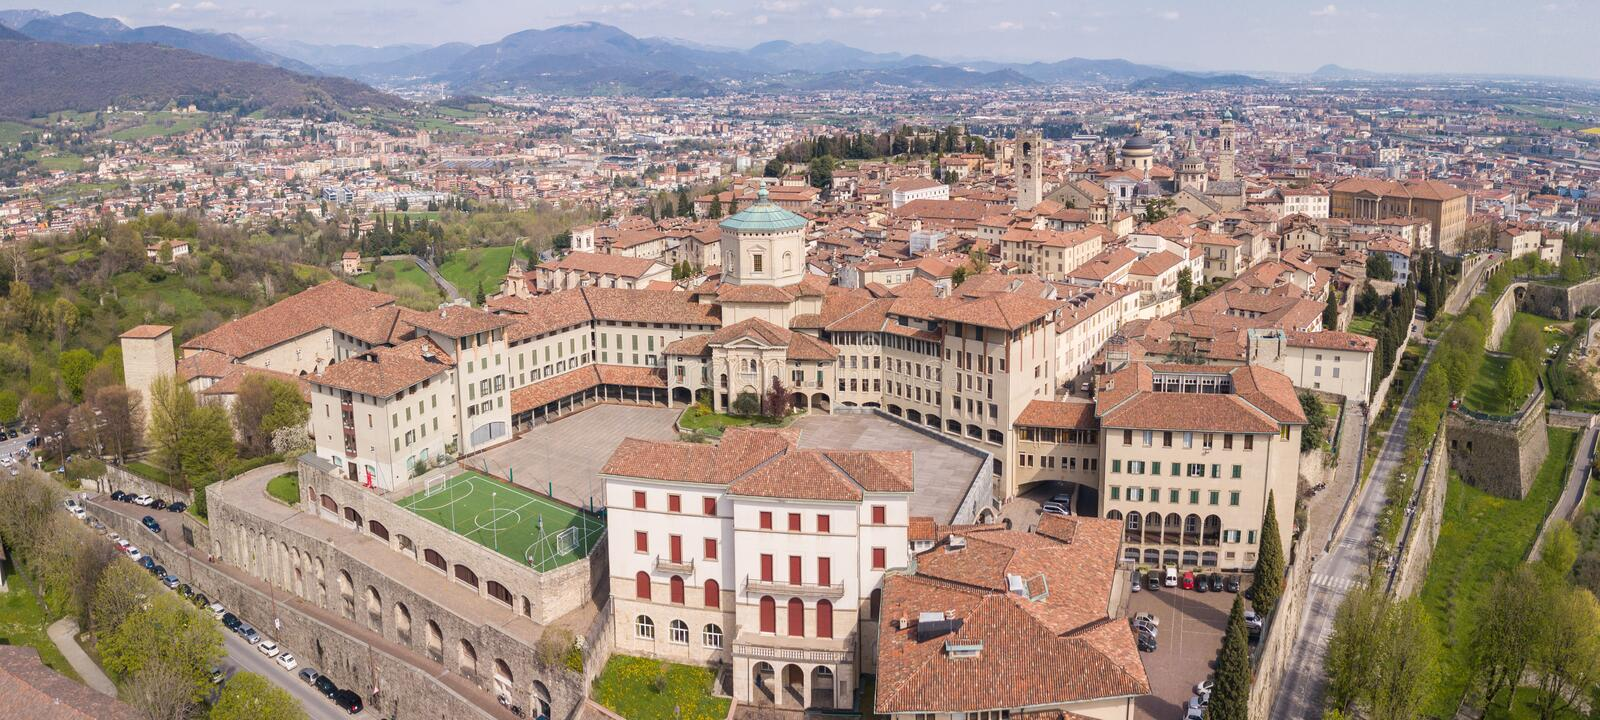 Bergamo, Italy. Drone aerial view of the old town. Landscape at the city center, its historical buildings and the Venetian walls royalty free stock photography